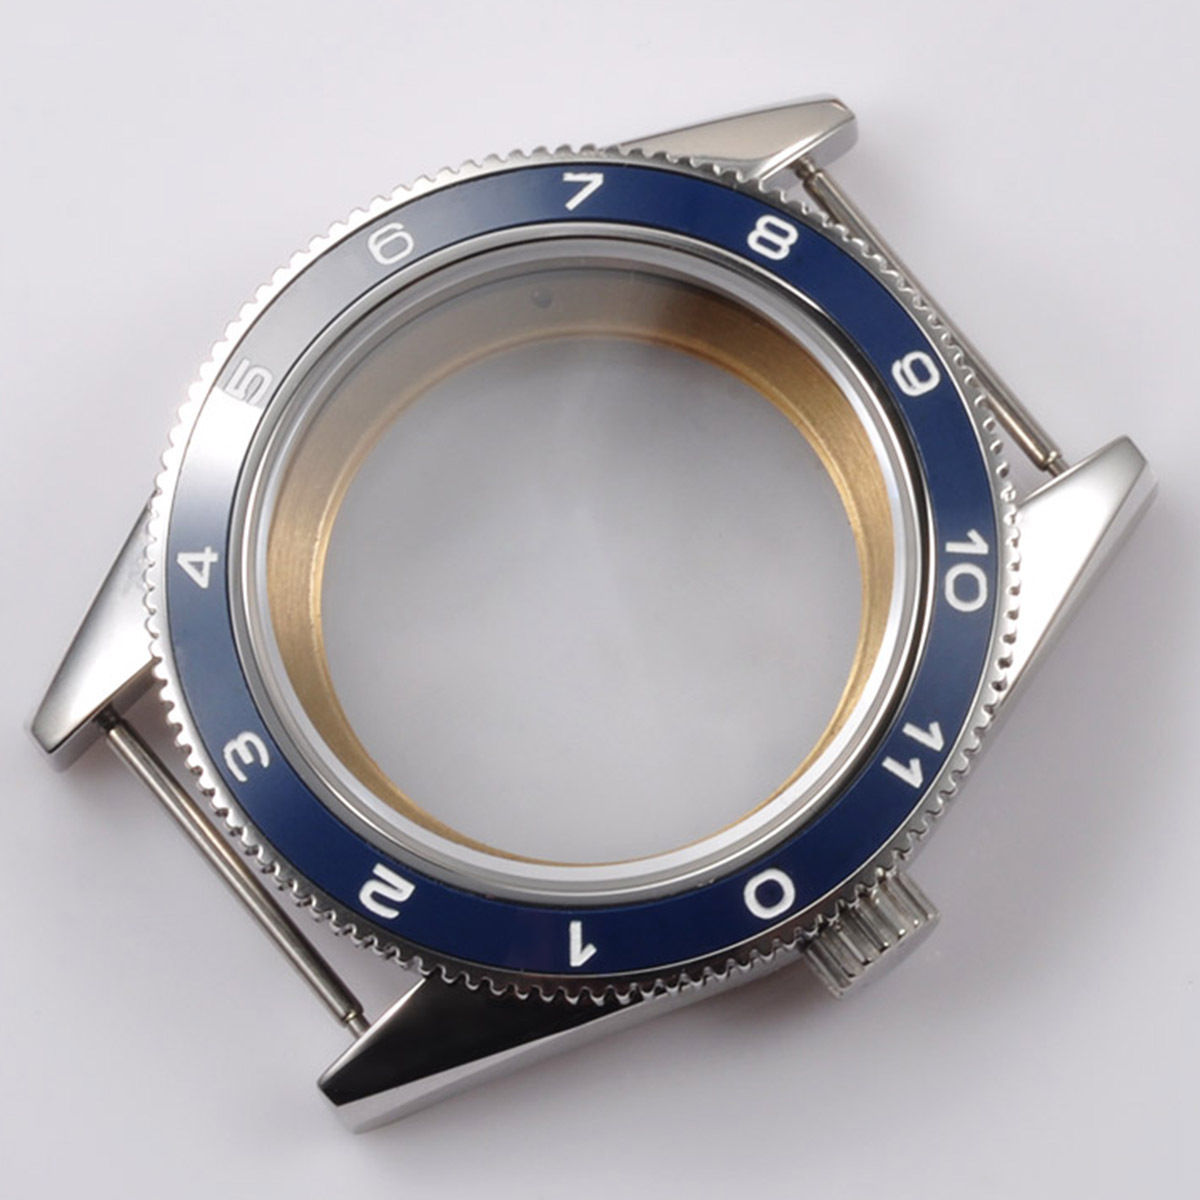 41mm Blue Ceramic Bezel Sapphire Cystal Watch Case Fit for 2824 2836 automatic mechanical Movement | Repair Tools & Kits